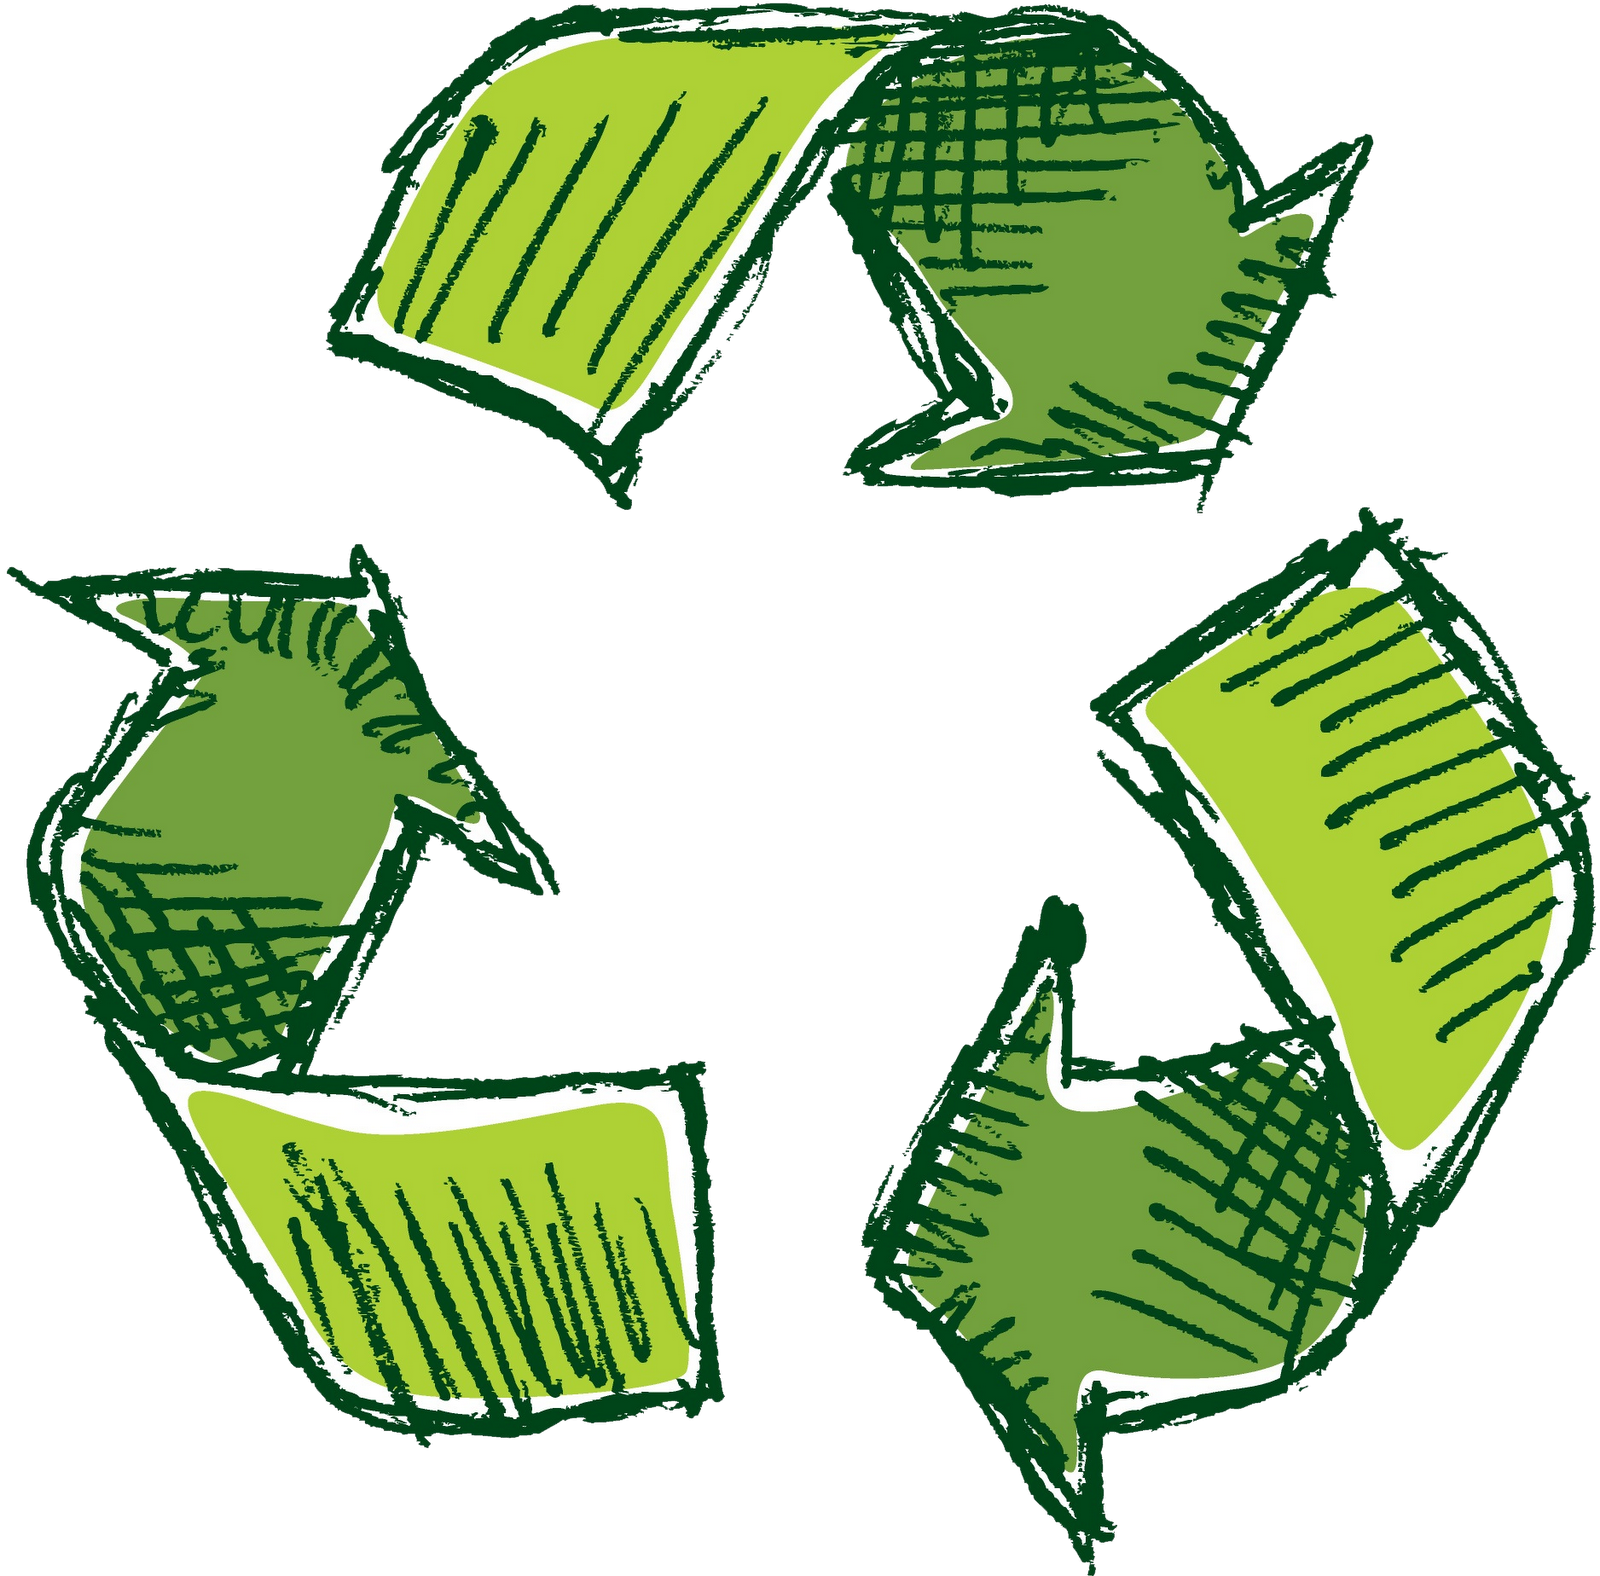 Garbage clipart nonbiodegradable. Solid waste on emaze